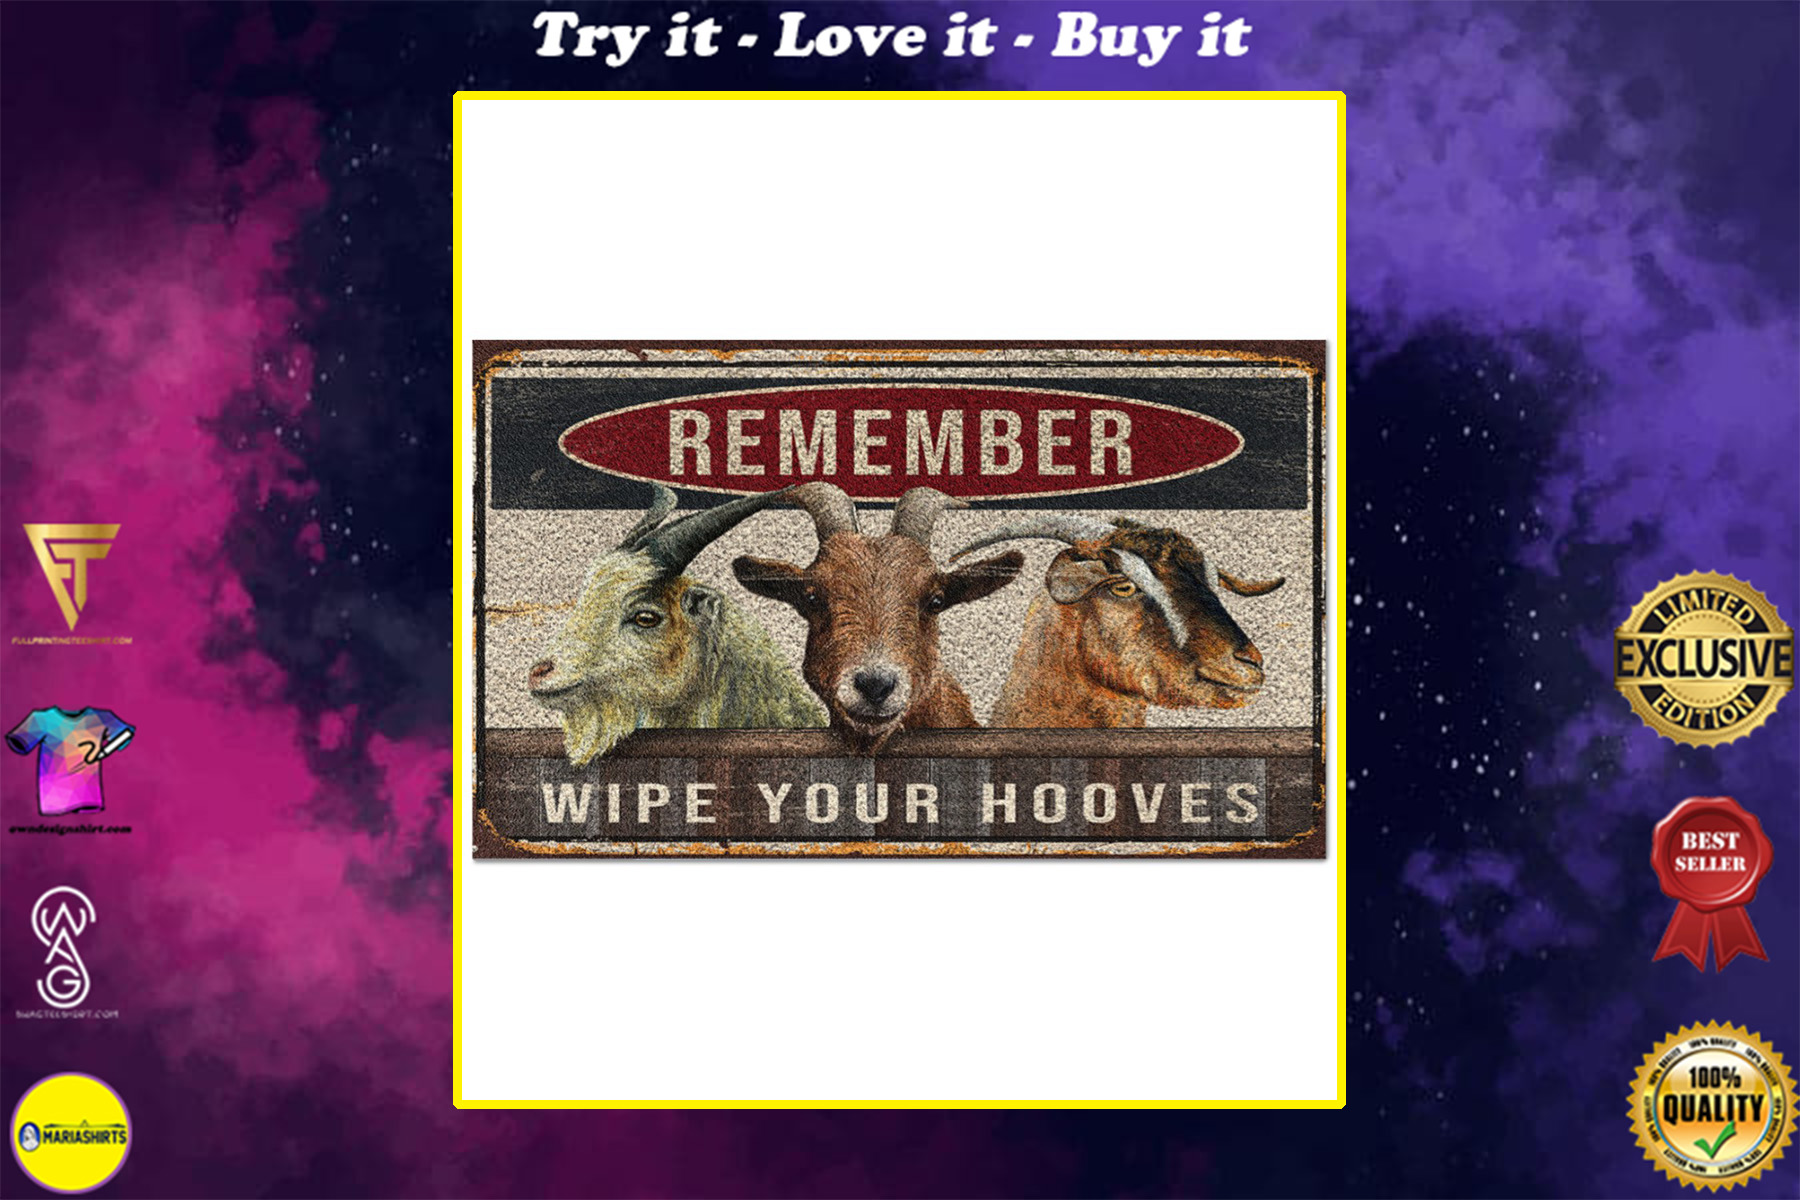 goats remember wipe your hooves full printing doormat